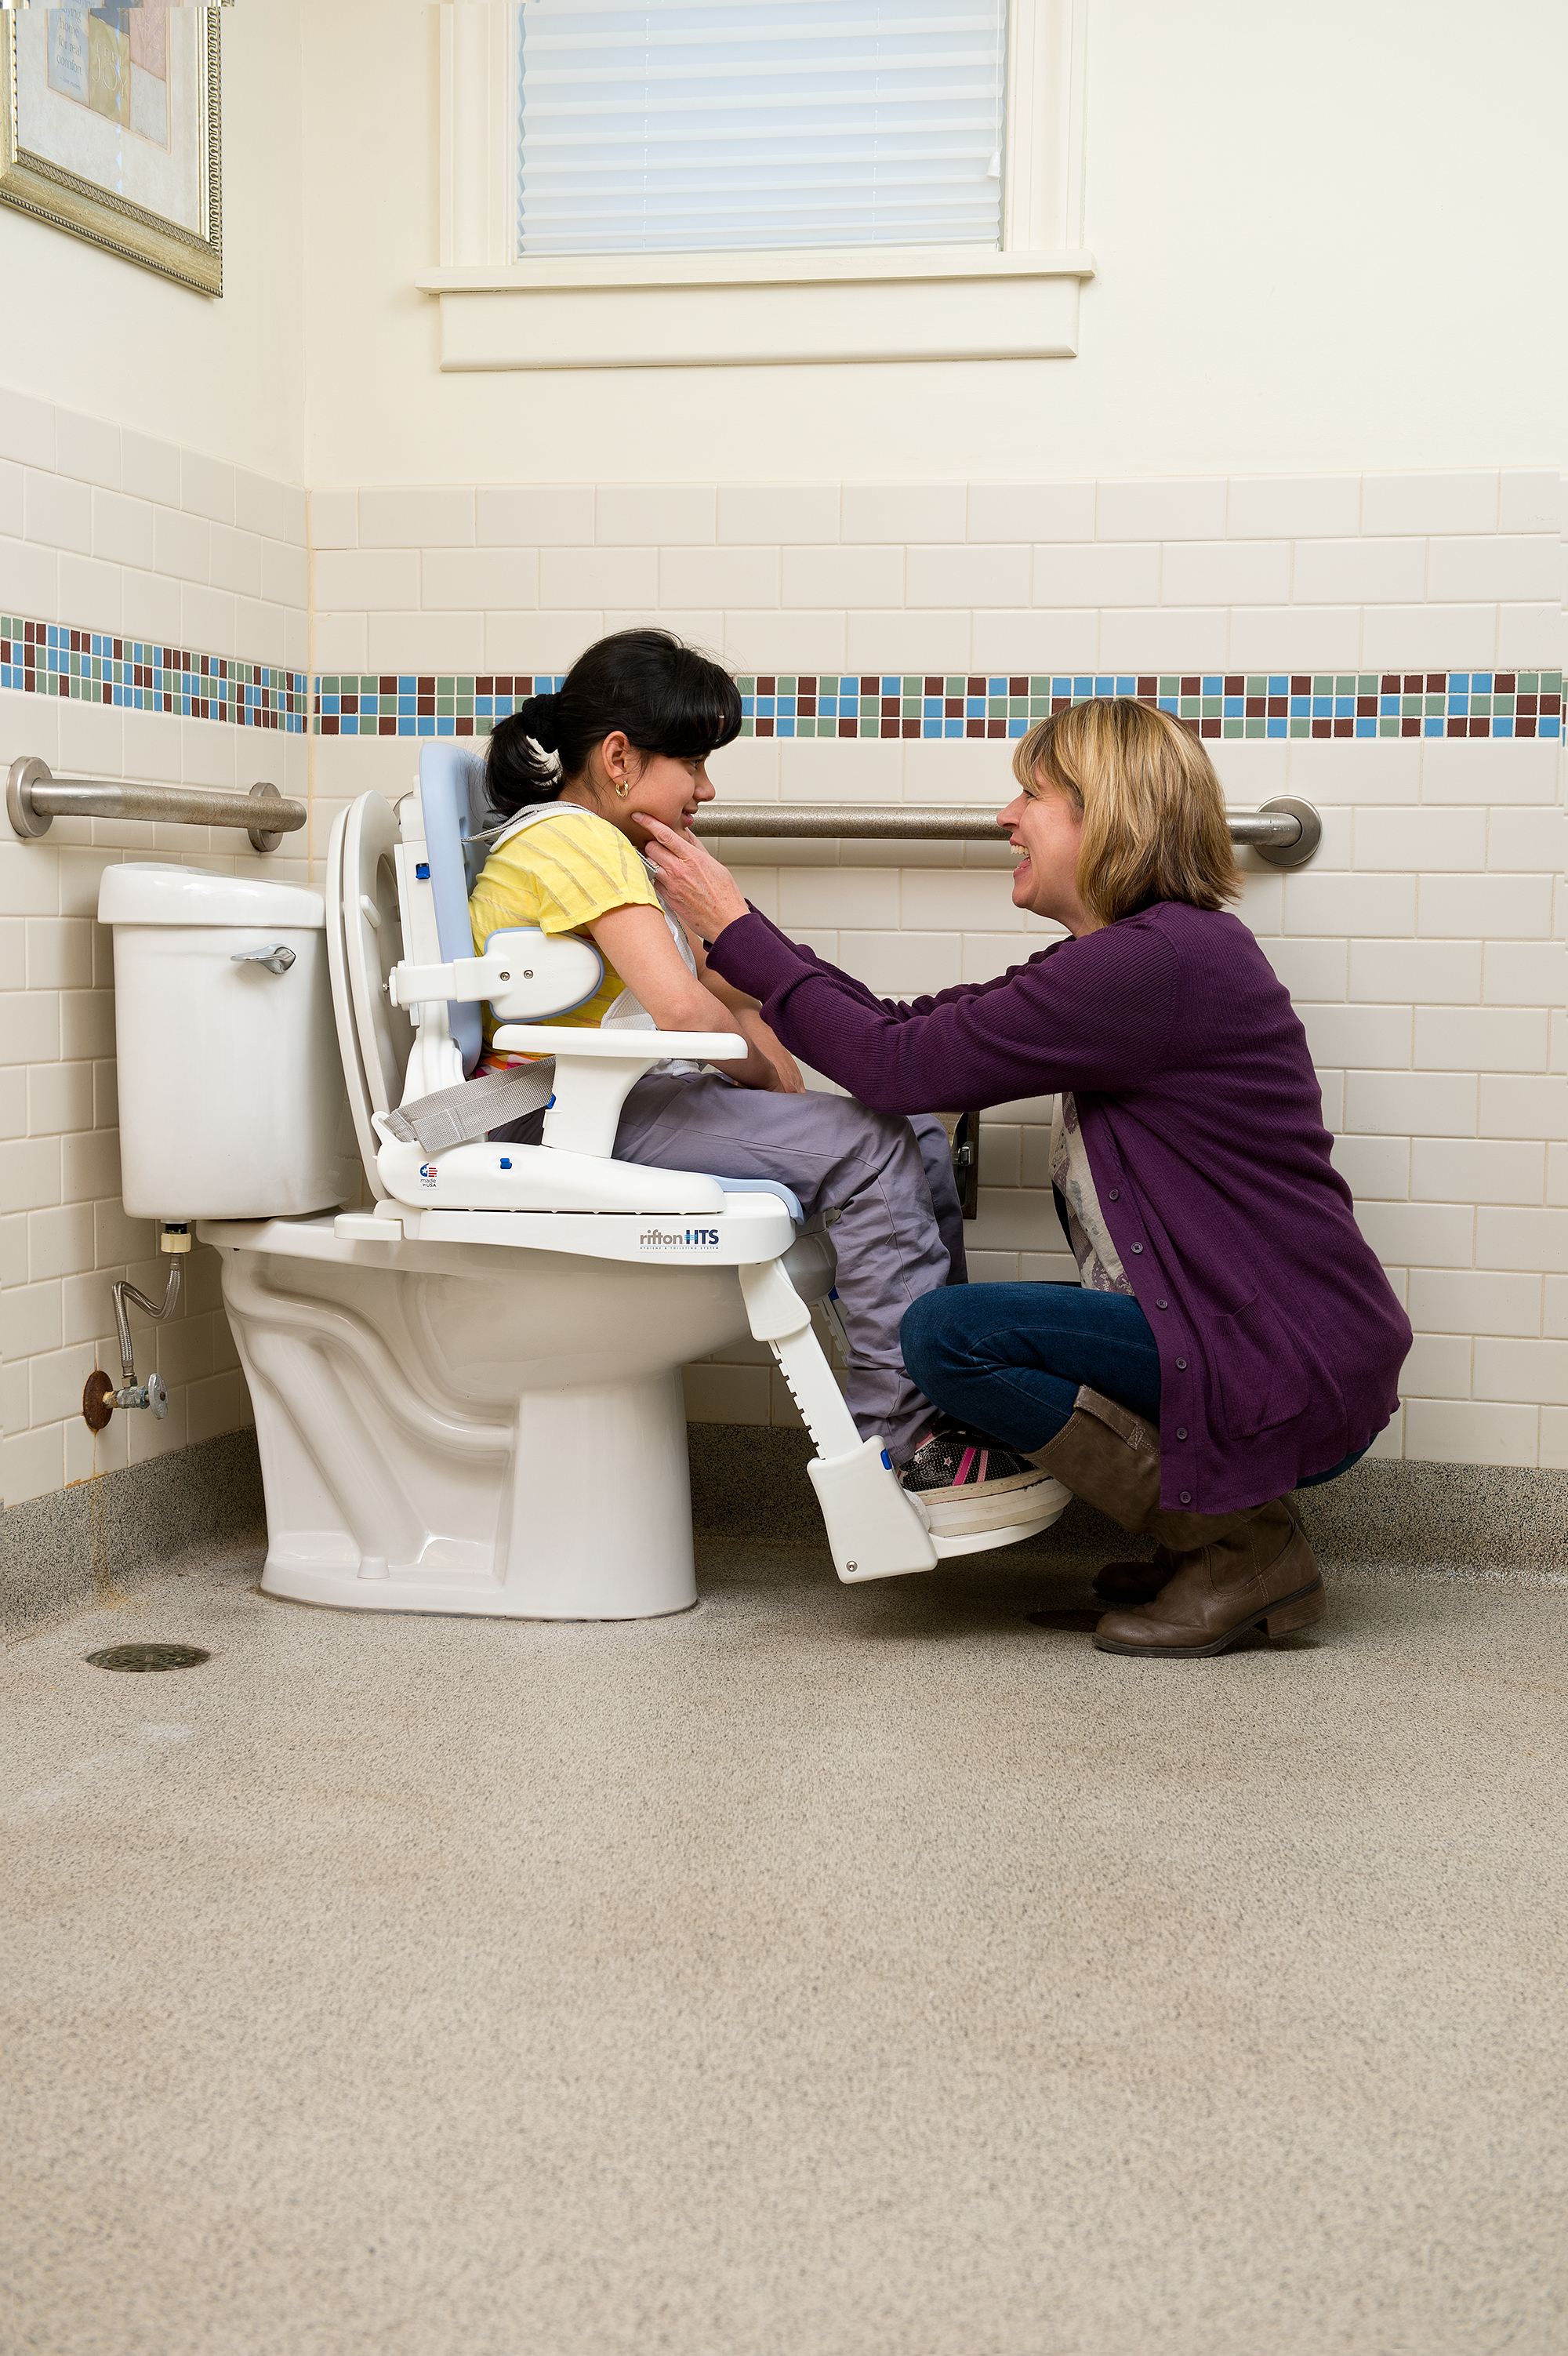 potty chairs for special needs card table and big lots rifton the hts hygiene toileting system